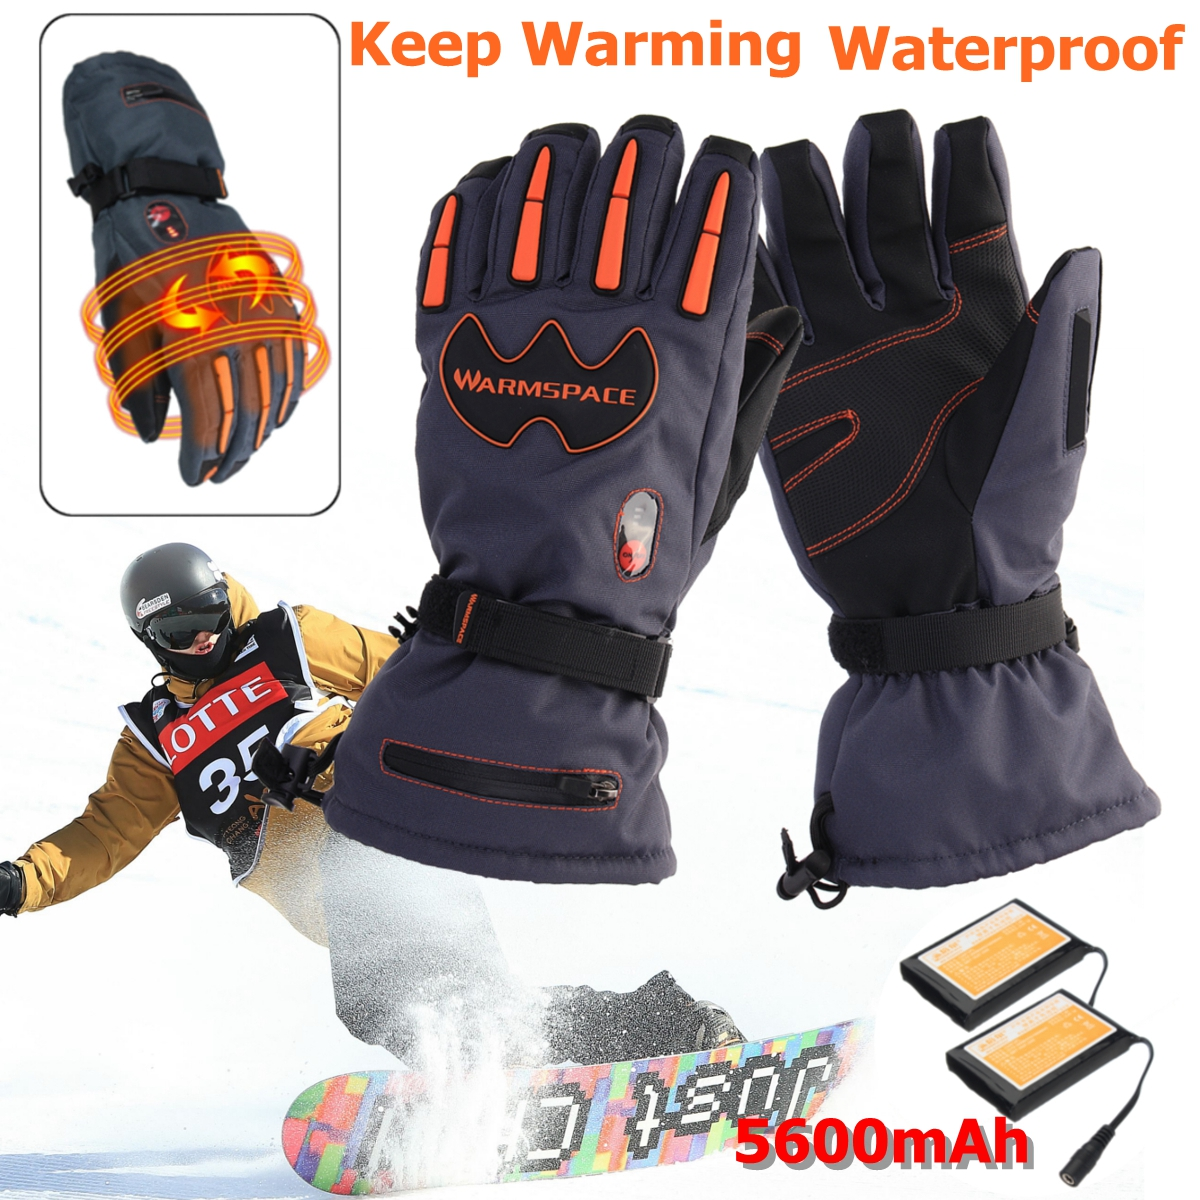 5600mAh Rechargeable Battery Electric Heated Hands Motorcycle Gloves Winter Warmer With 2 Batteries